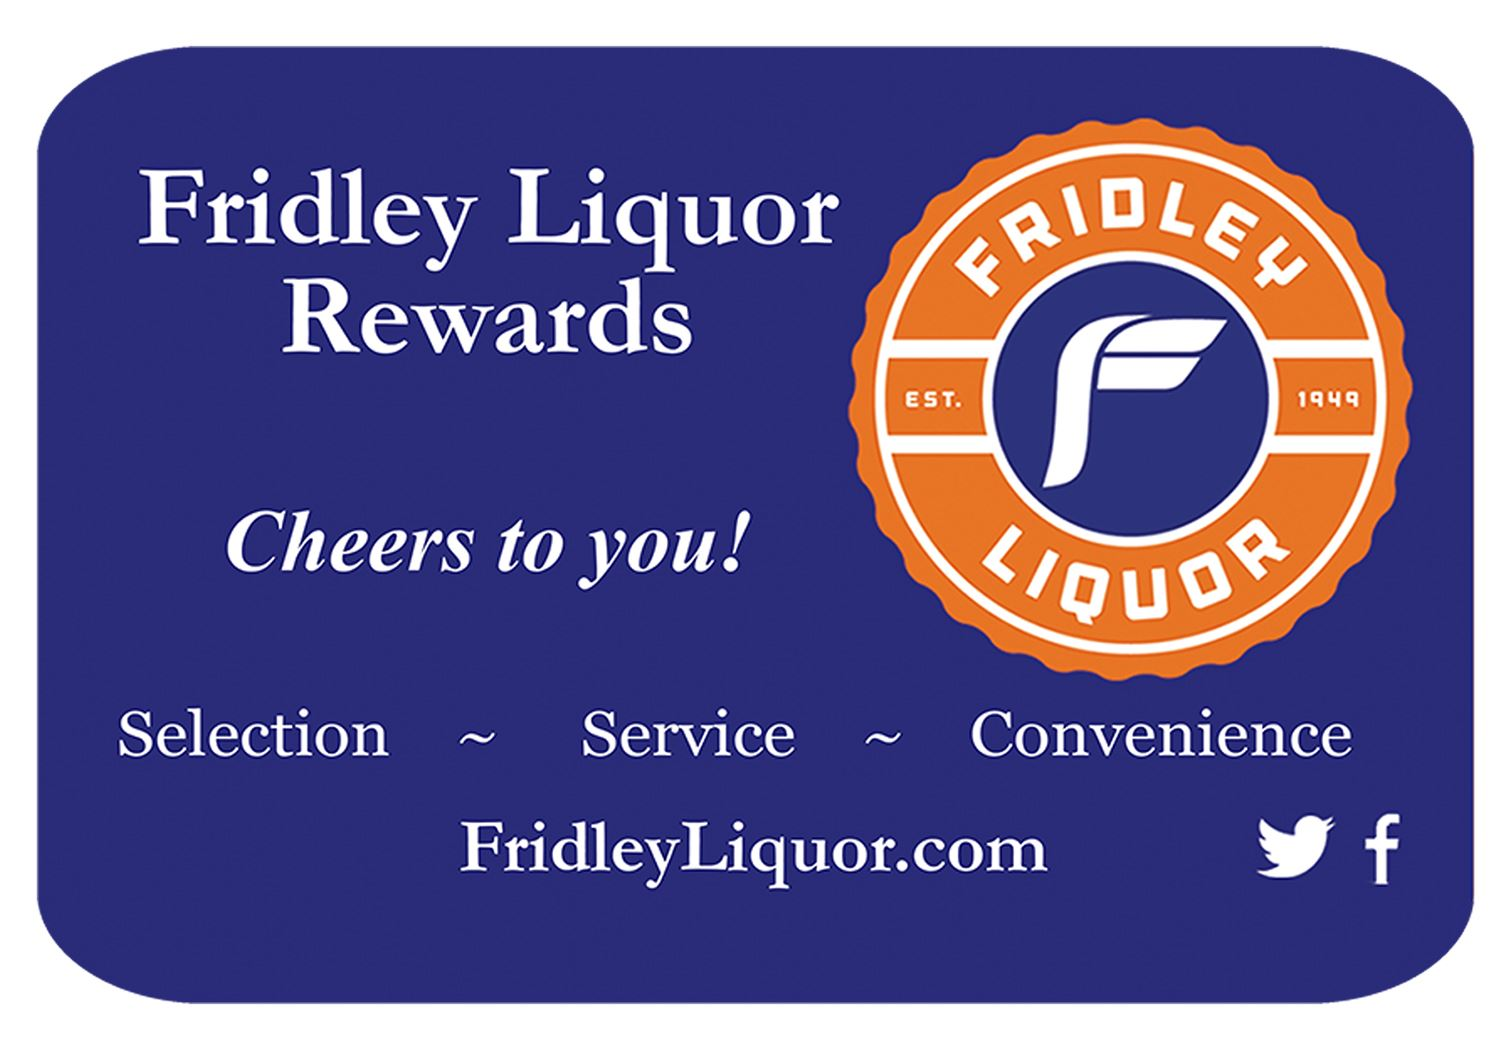 Fridley Liquor Rewards